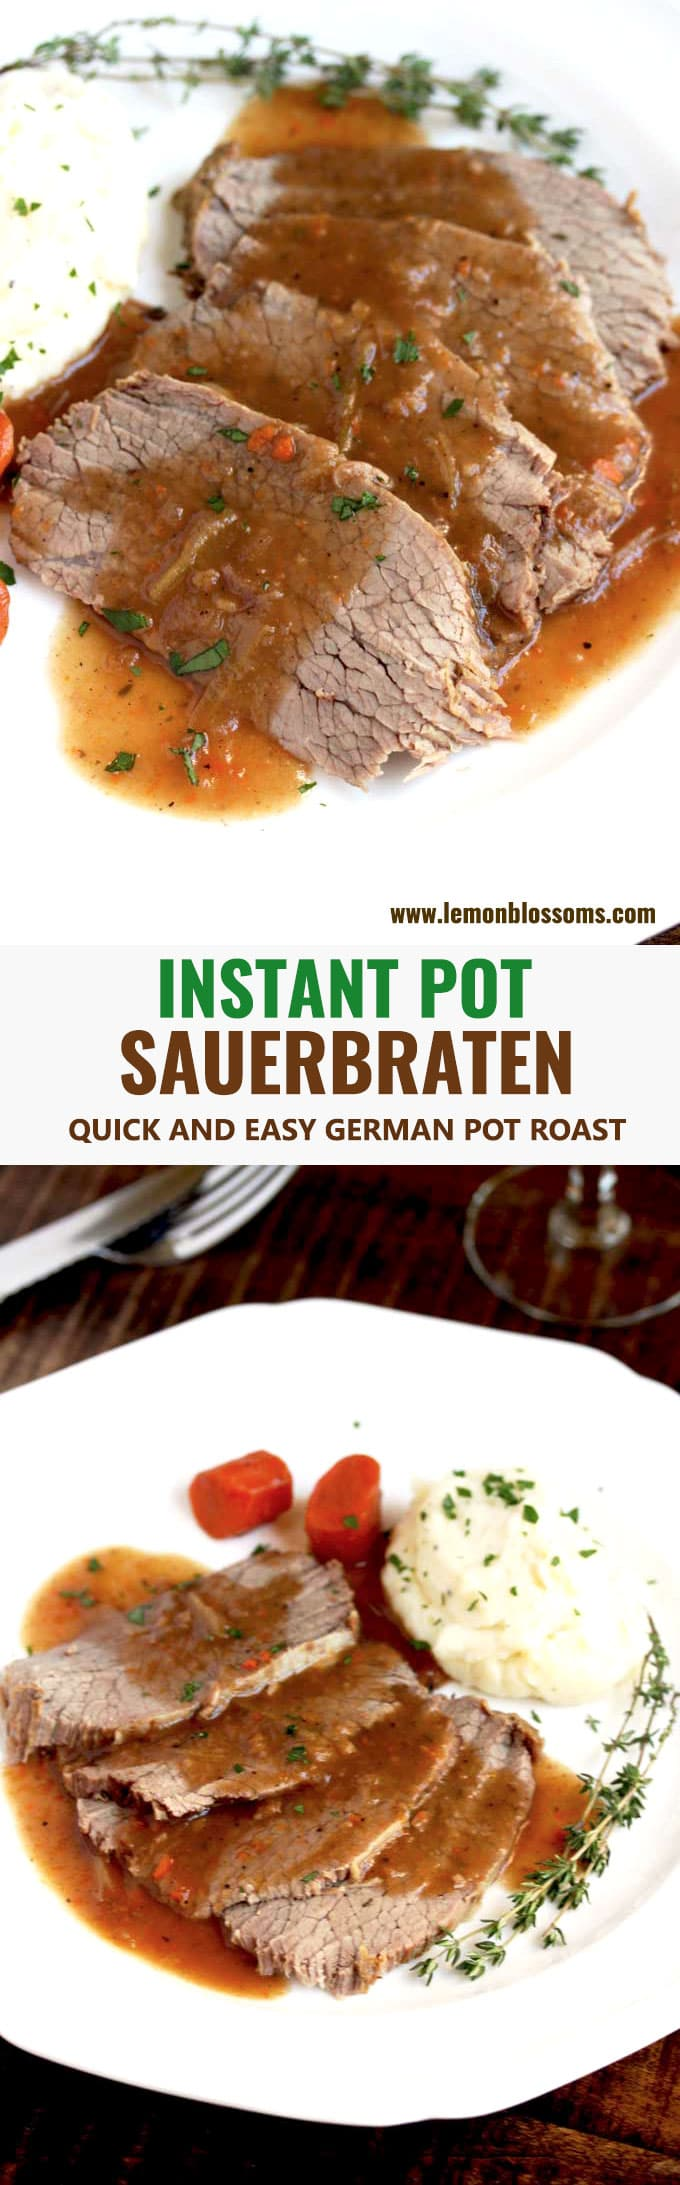 This Sauerbraten recipe is made quickly in the pressure cooker. Enjoy the robust flavors of this traditional German Pot Roast without having to marinade the meat for days! Your instant pot seals in the flavor in a fraction of the time! #recipe #Oktoberfest #German #instantpot #Quick